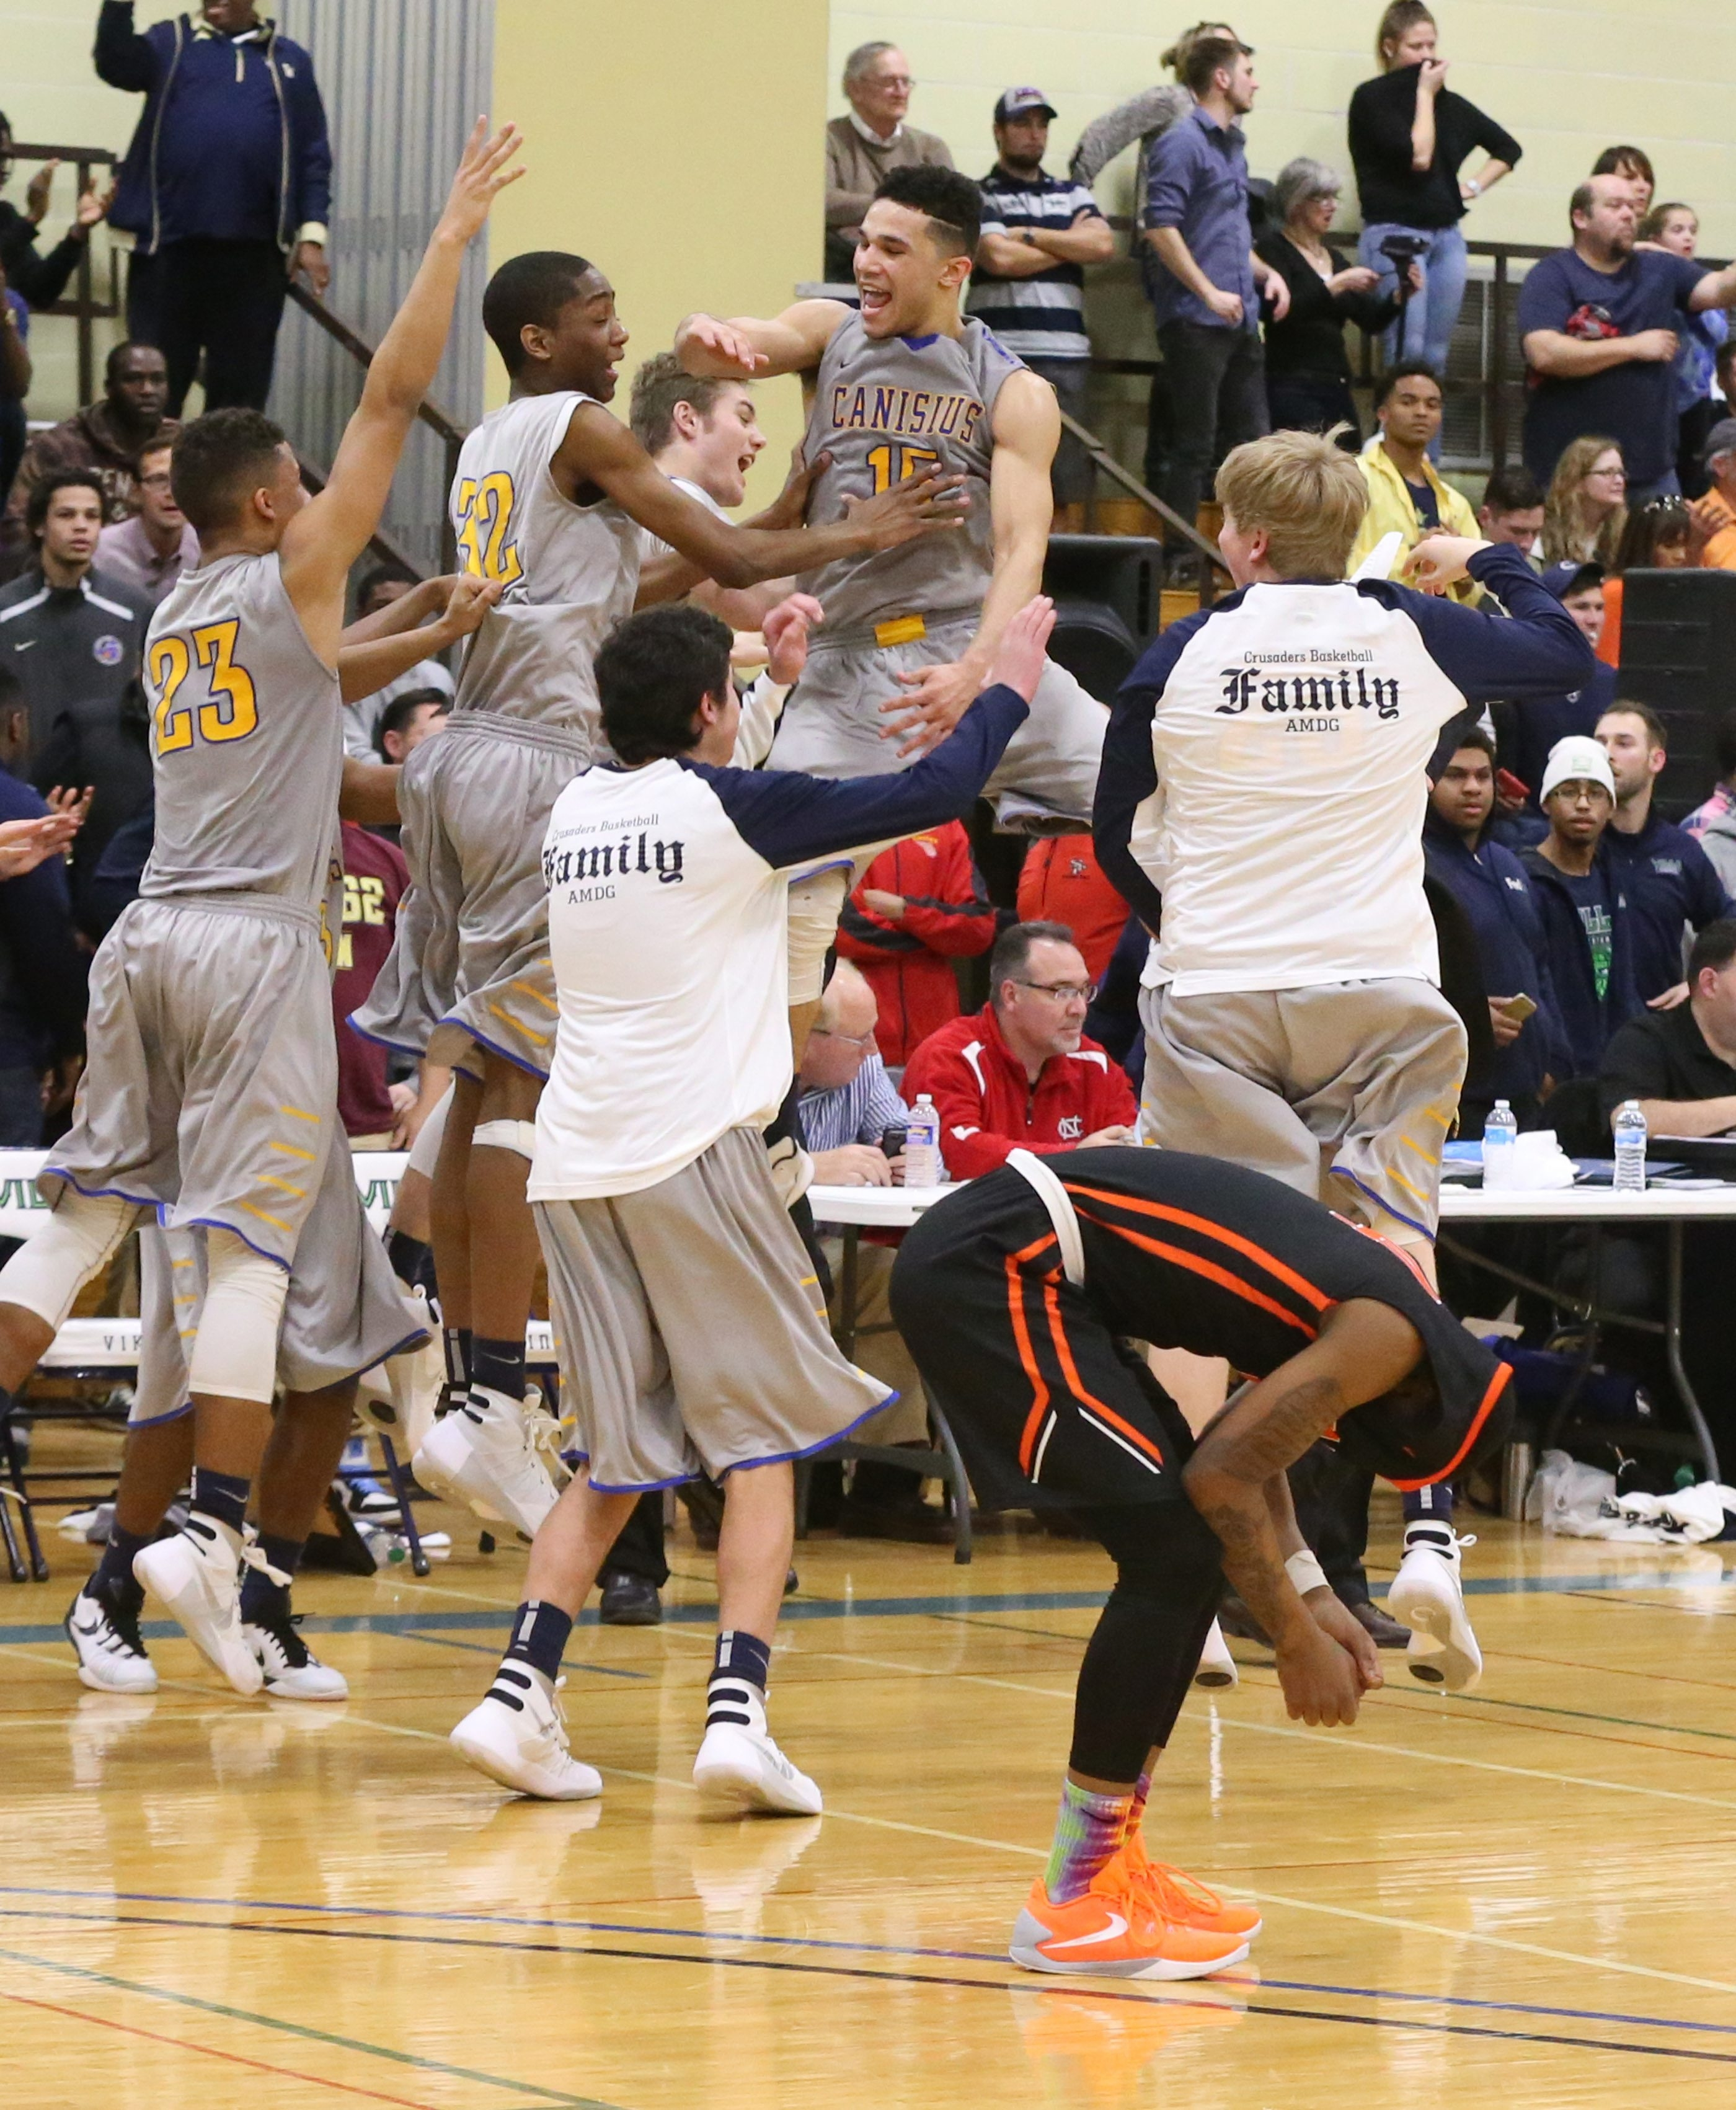 Canisius Crusaders Justin Jones takes the high road to celebrate with his team after defeating Park  in overtime before a standing-room only crowd at Villa Maria College on Sunday.